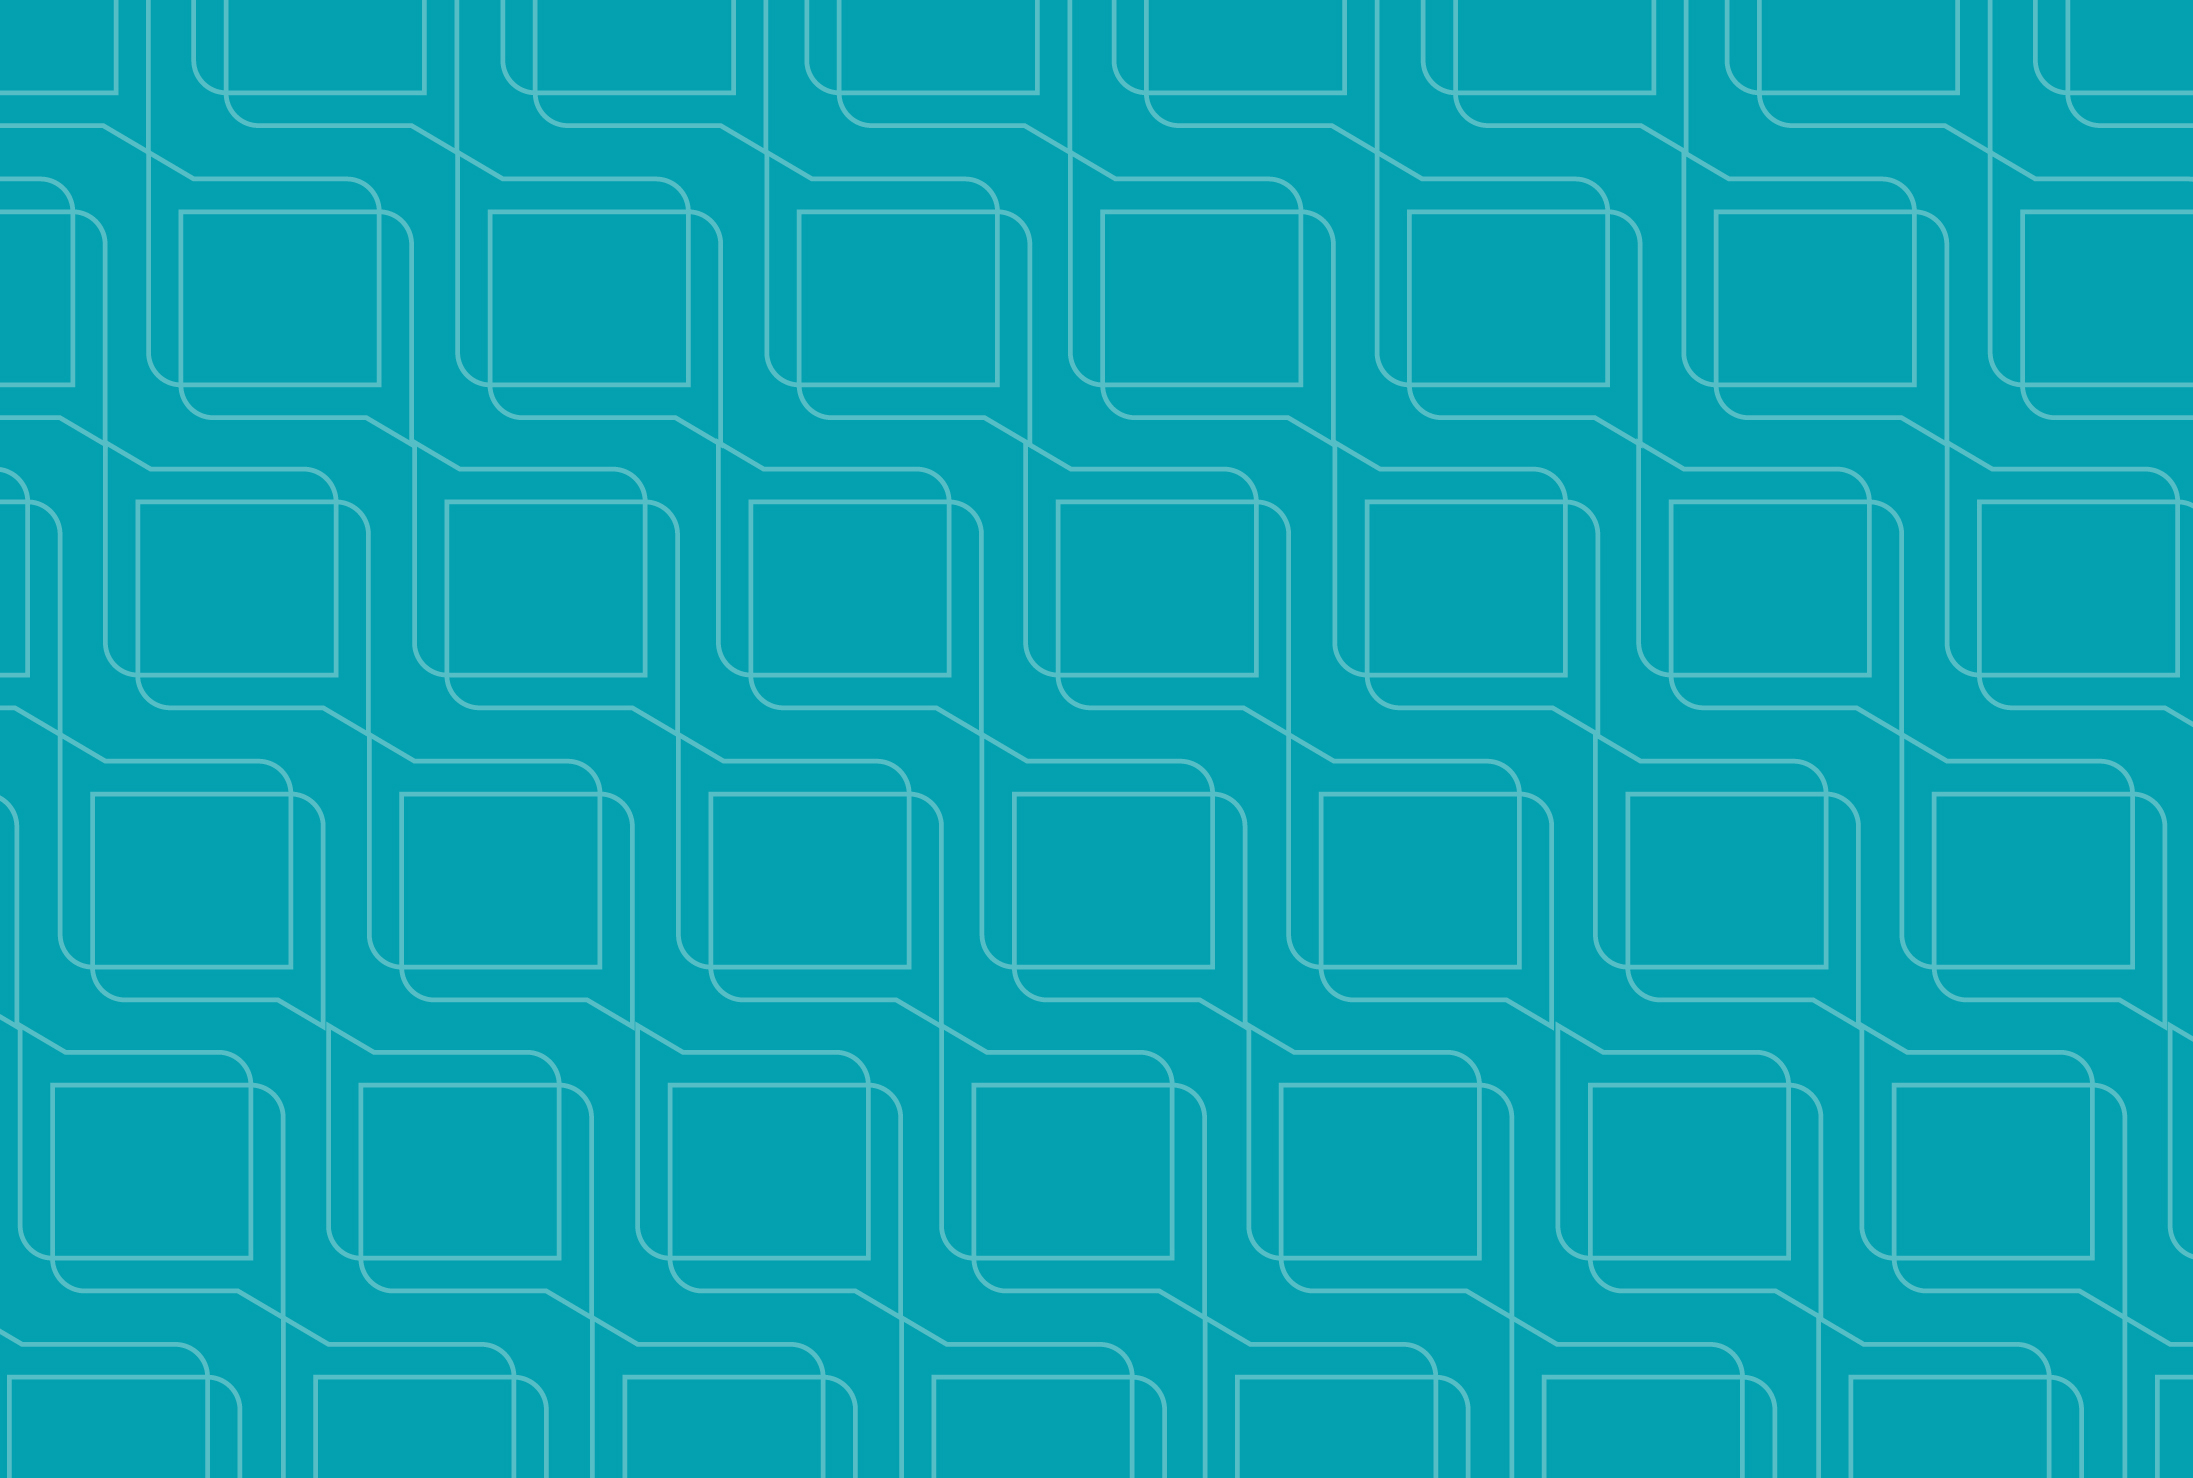 a decorative teal background with a light speech bubble pattern overlaid on it